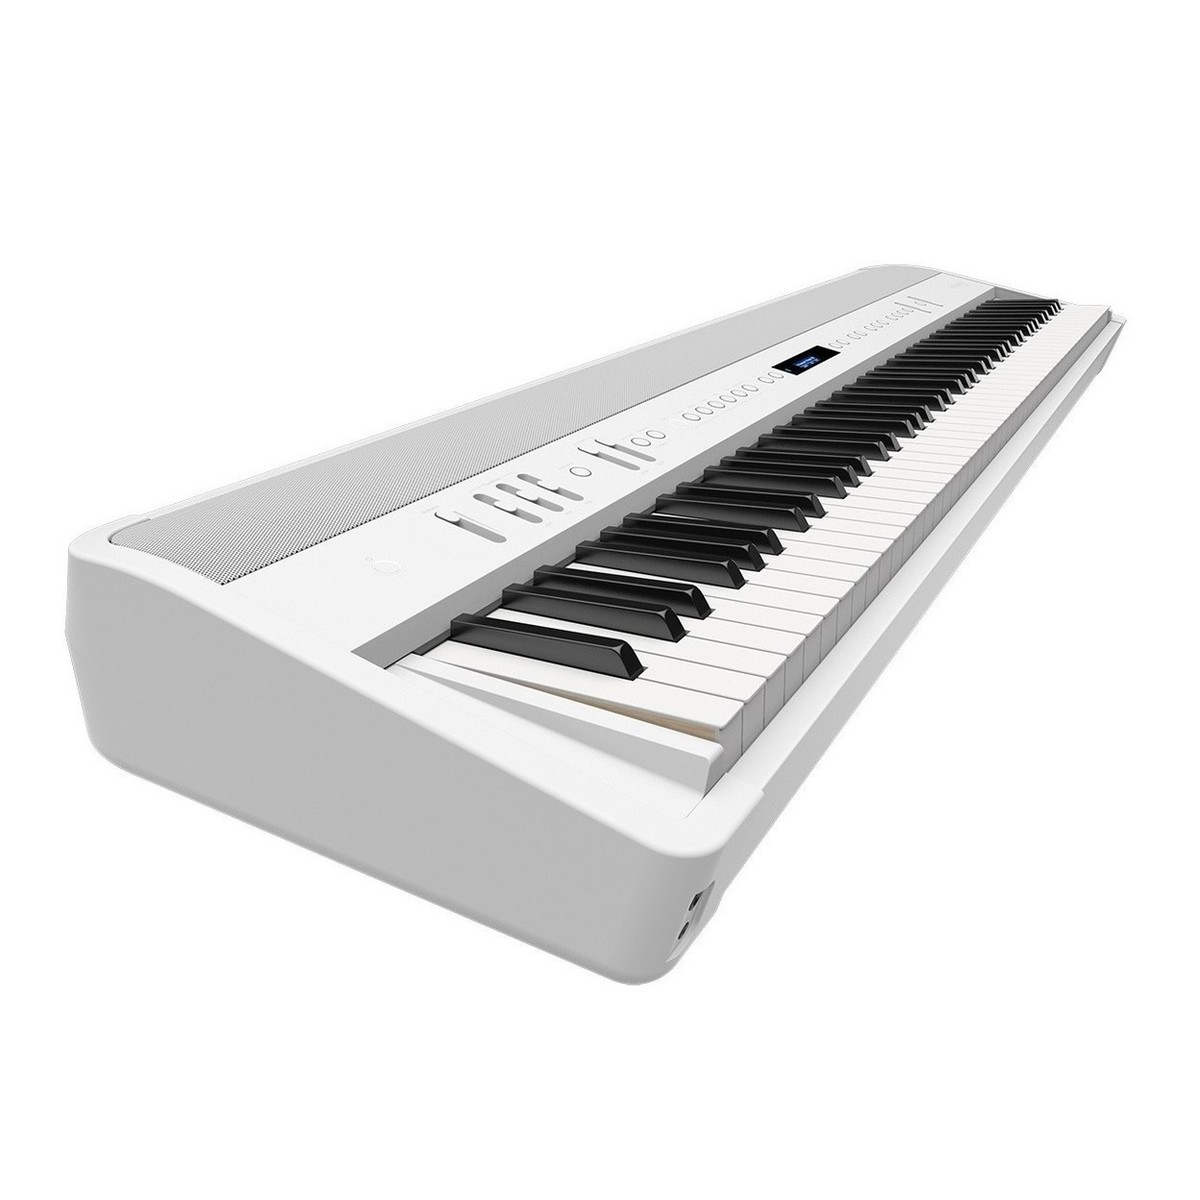 Roland FP-90 Digital Piano. Loading zoom  sc 1 st  Gear4music & Roland FP-90 Digital Piano with Stand Stool and Headphones White ... islam-shia.org